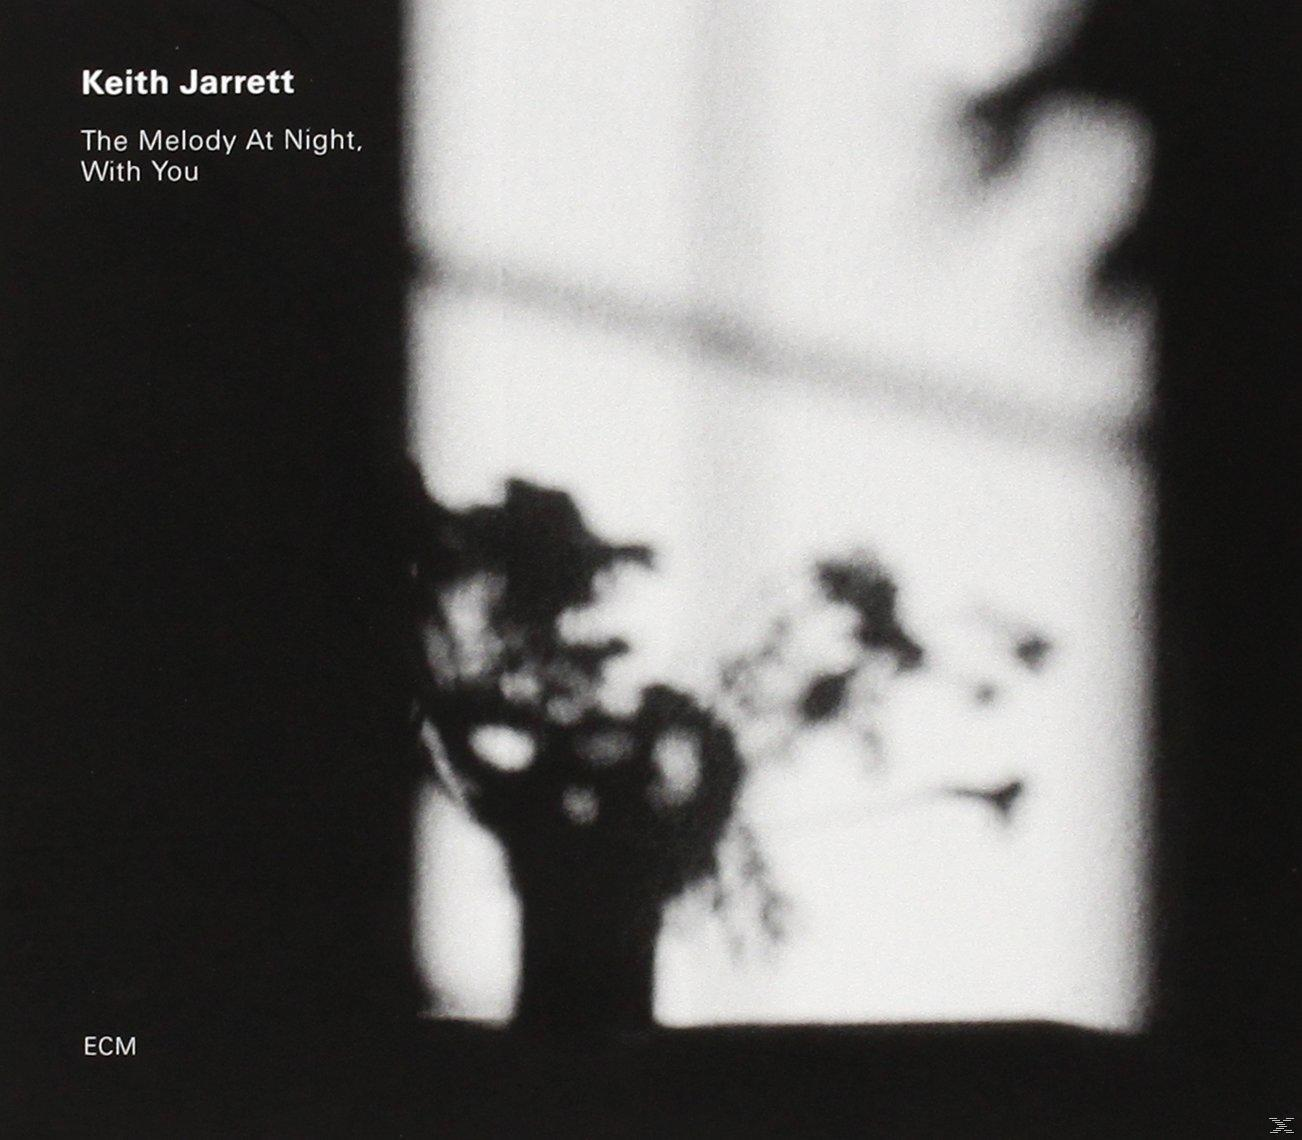 The Melody At Night,With You (Keith Jarrett) für 18,51 Euro